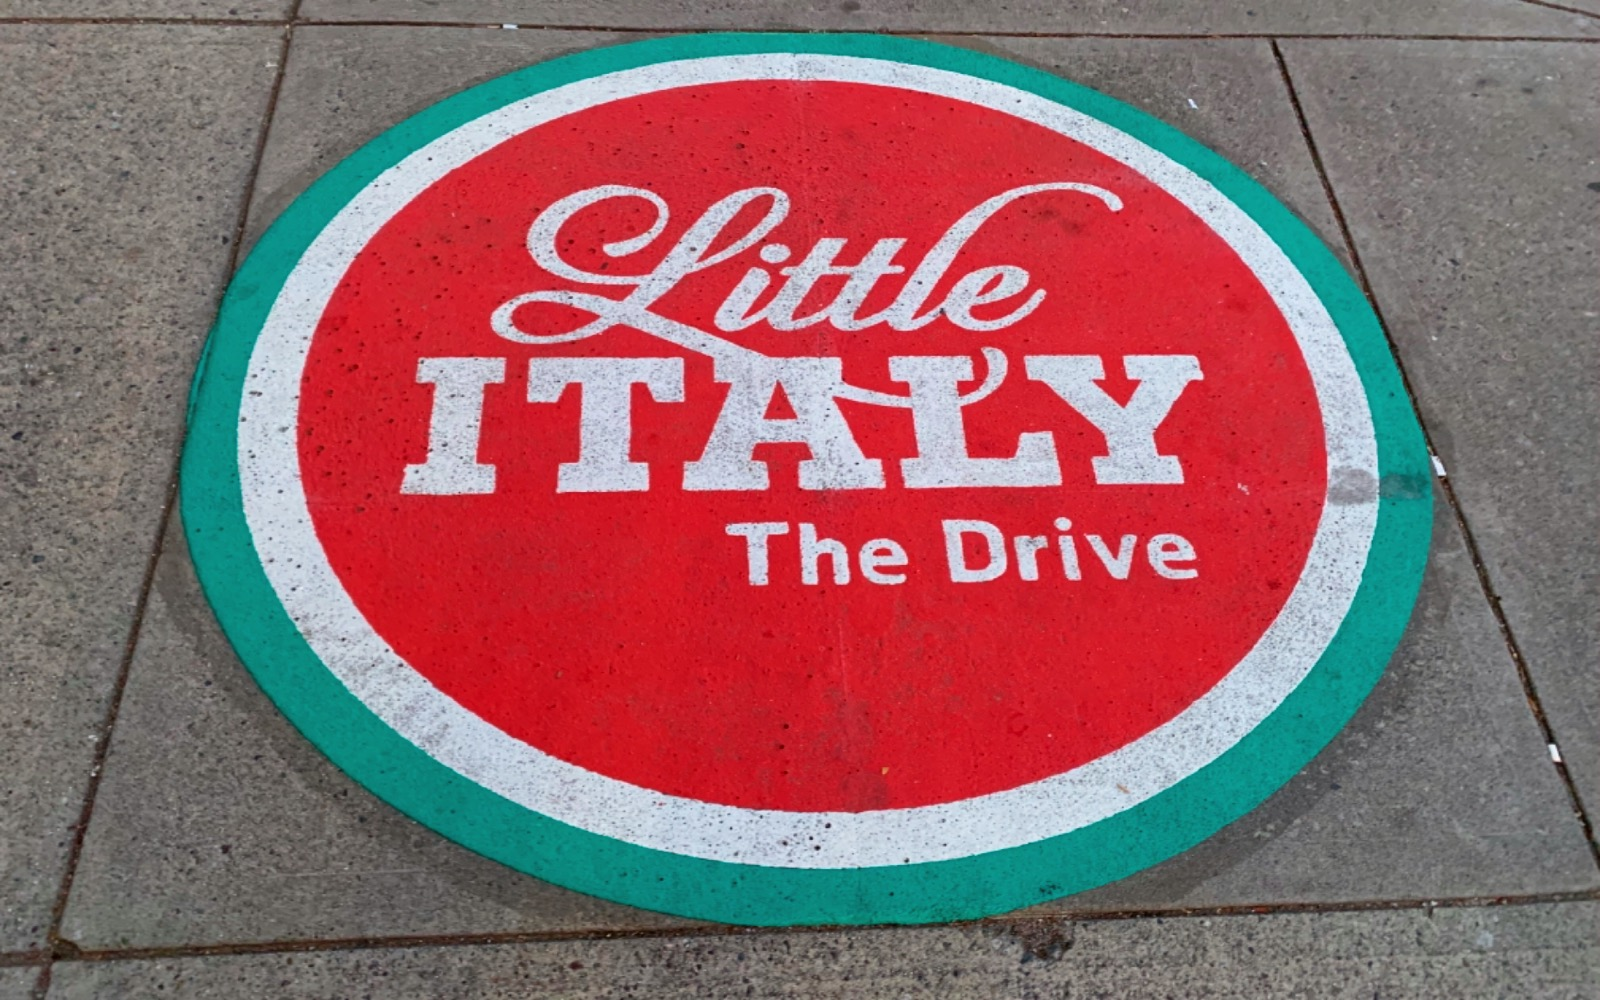 A street sign in Little Italy, Vancouver